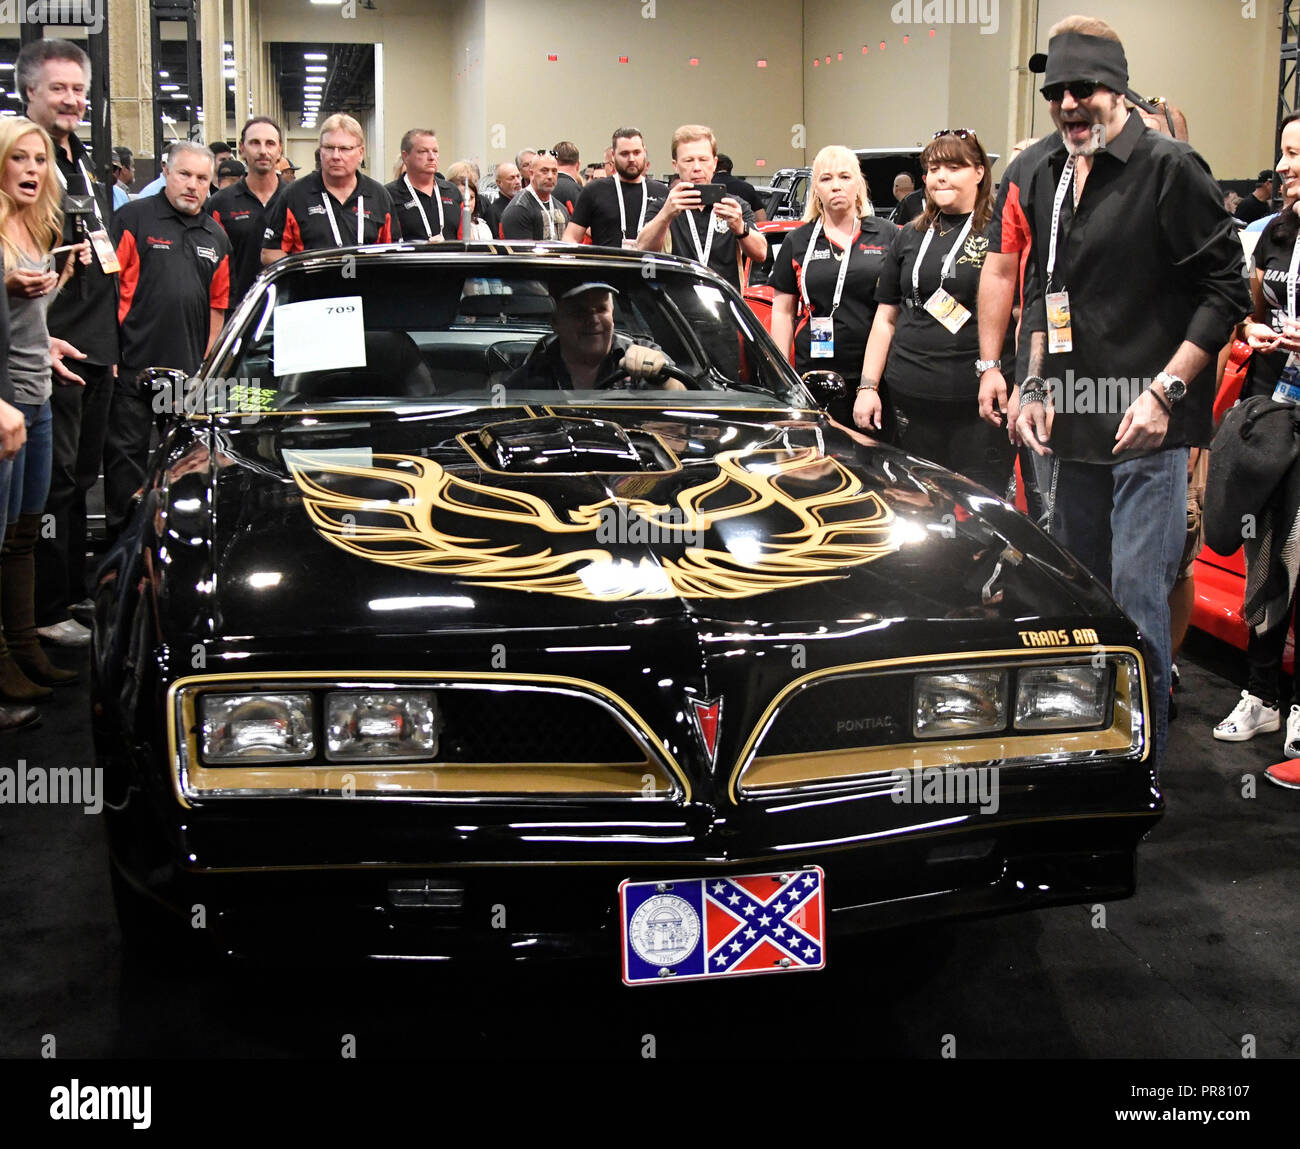 Burt Reynolds Bandit Stock Photos & Burt Reynolds Bandit